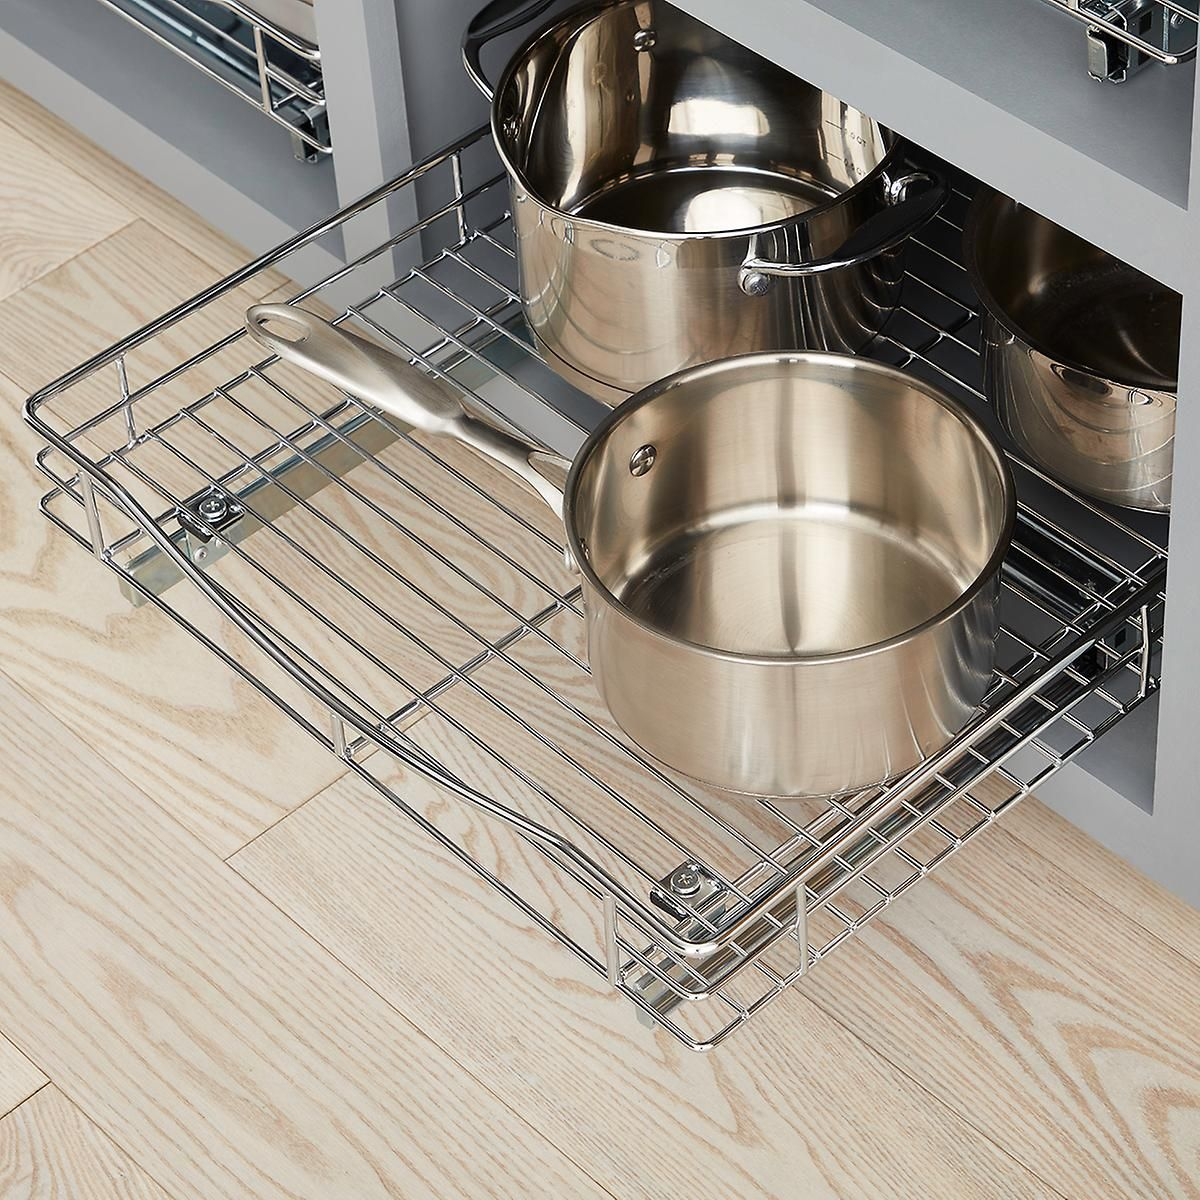 Lynk Chrome Pull Out Cabinet Drawers Pull Out Cabinet Drawers Kitchen Cabinet Storage Cabinet Drawers